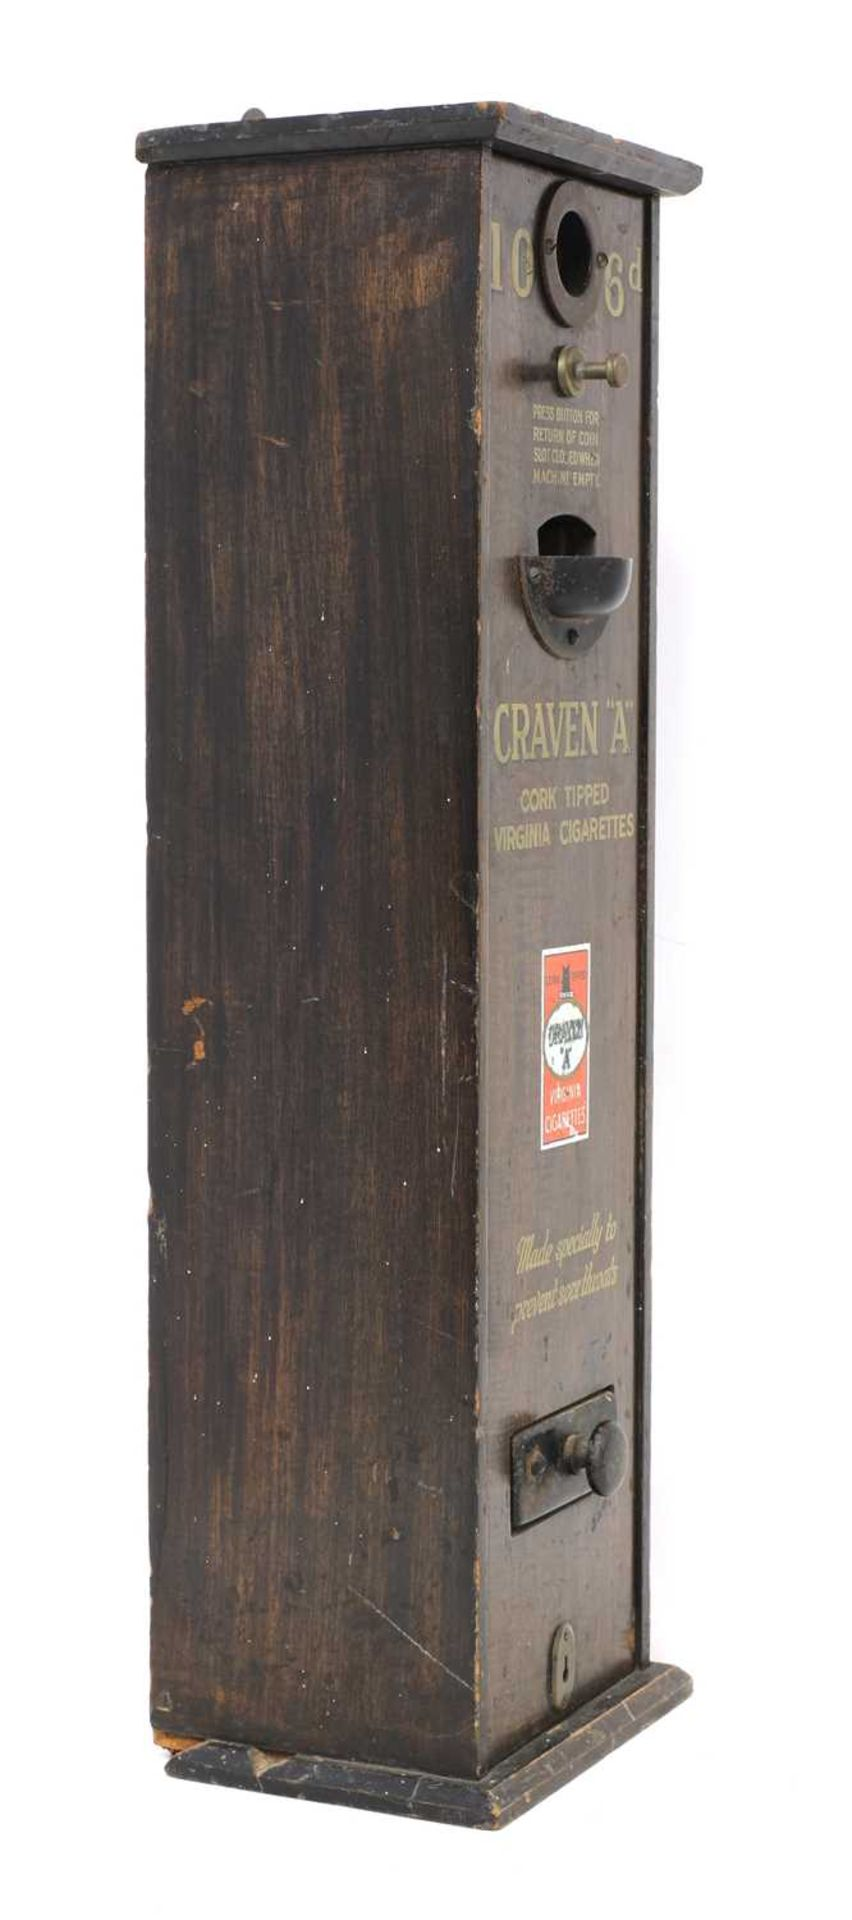 A 'Craven A' cigarette dispenser, - Image 3 of 3